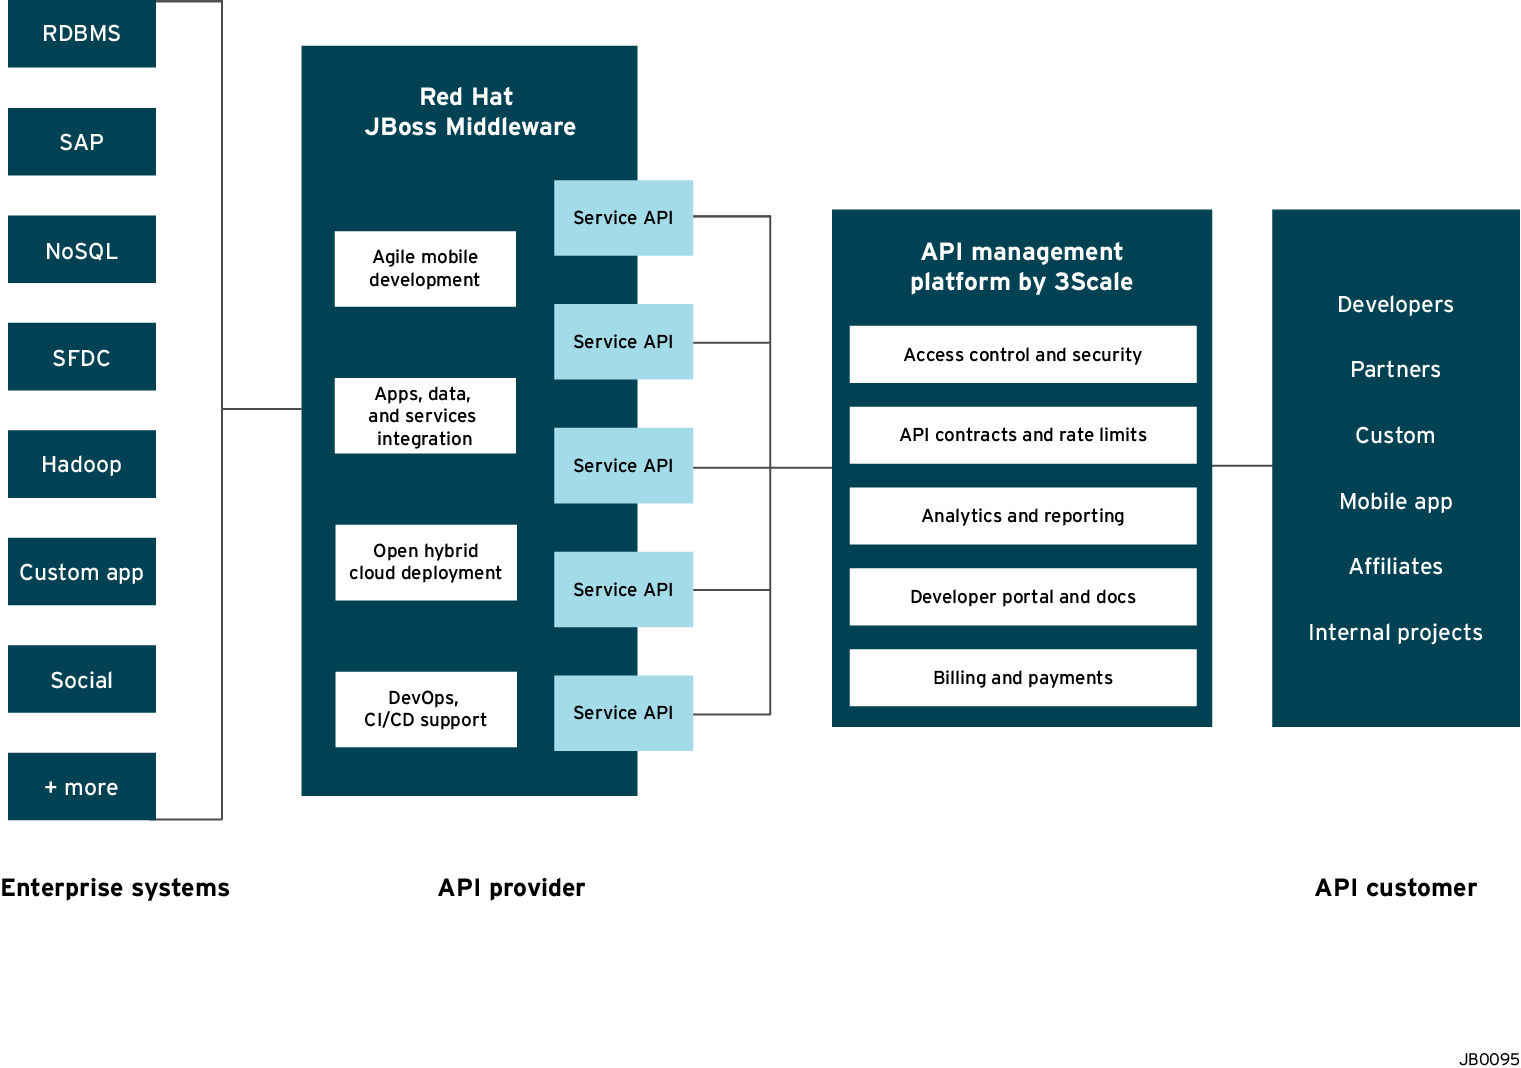 Red Hat and 3scale joint API solution